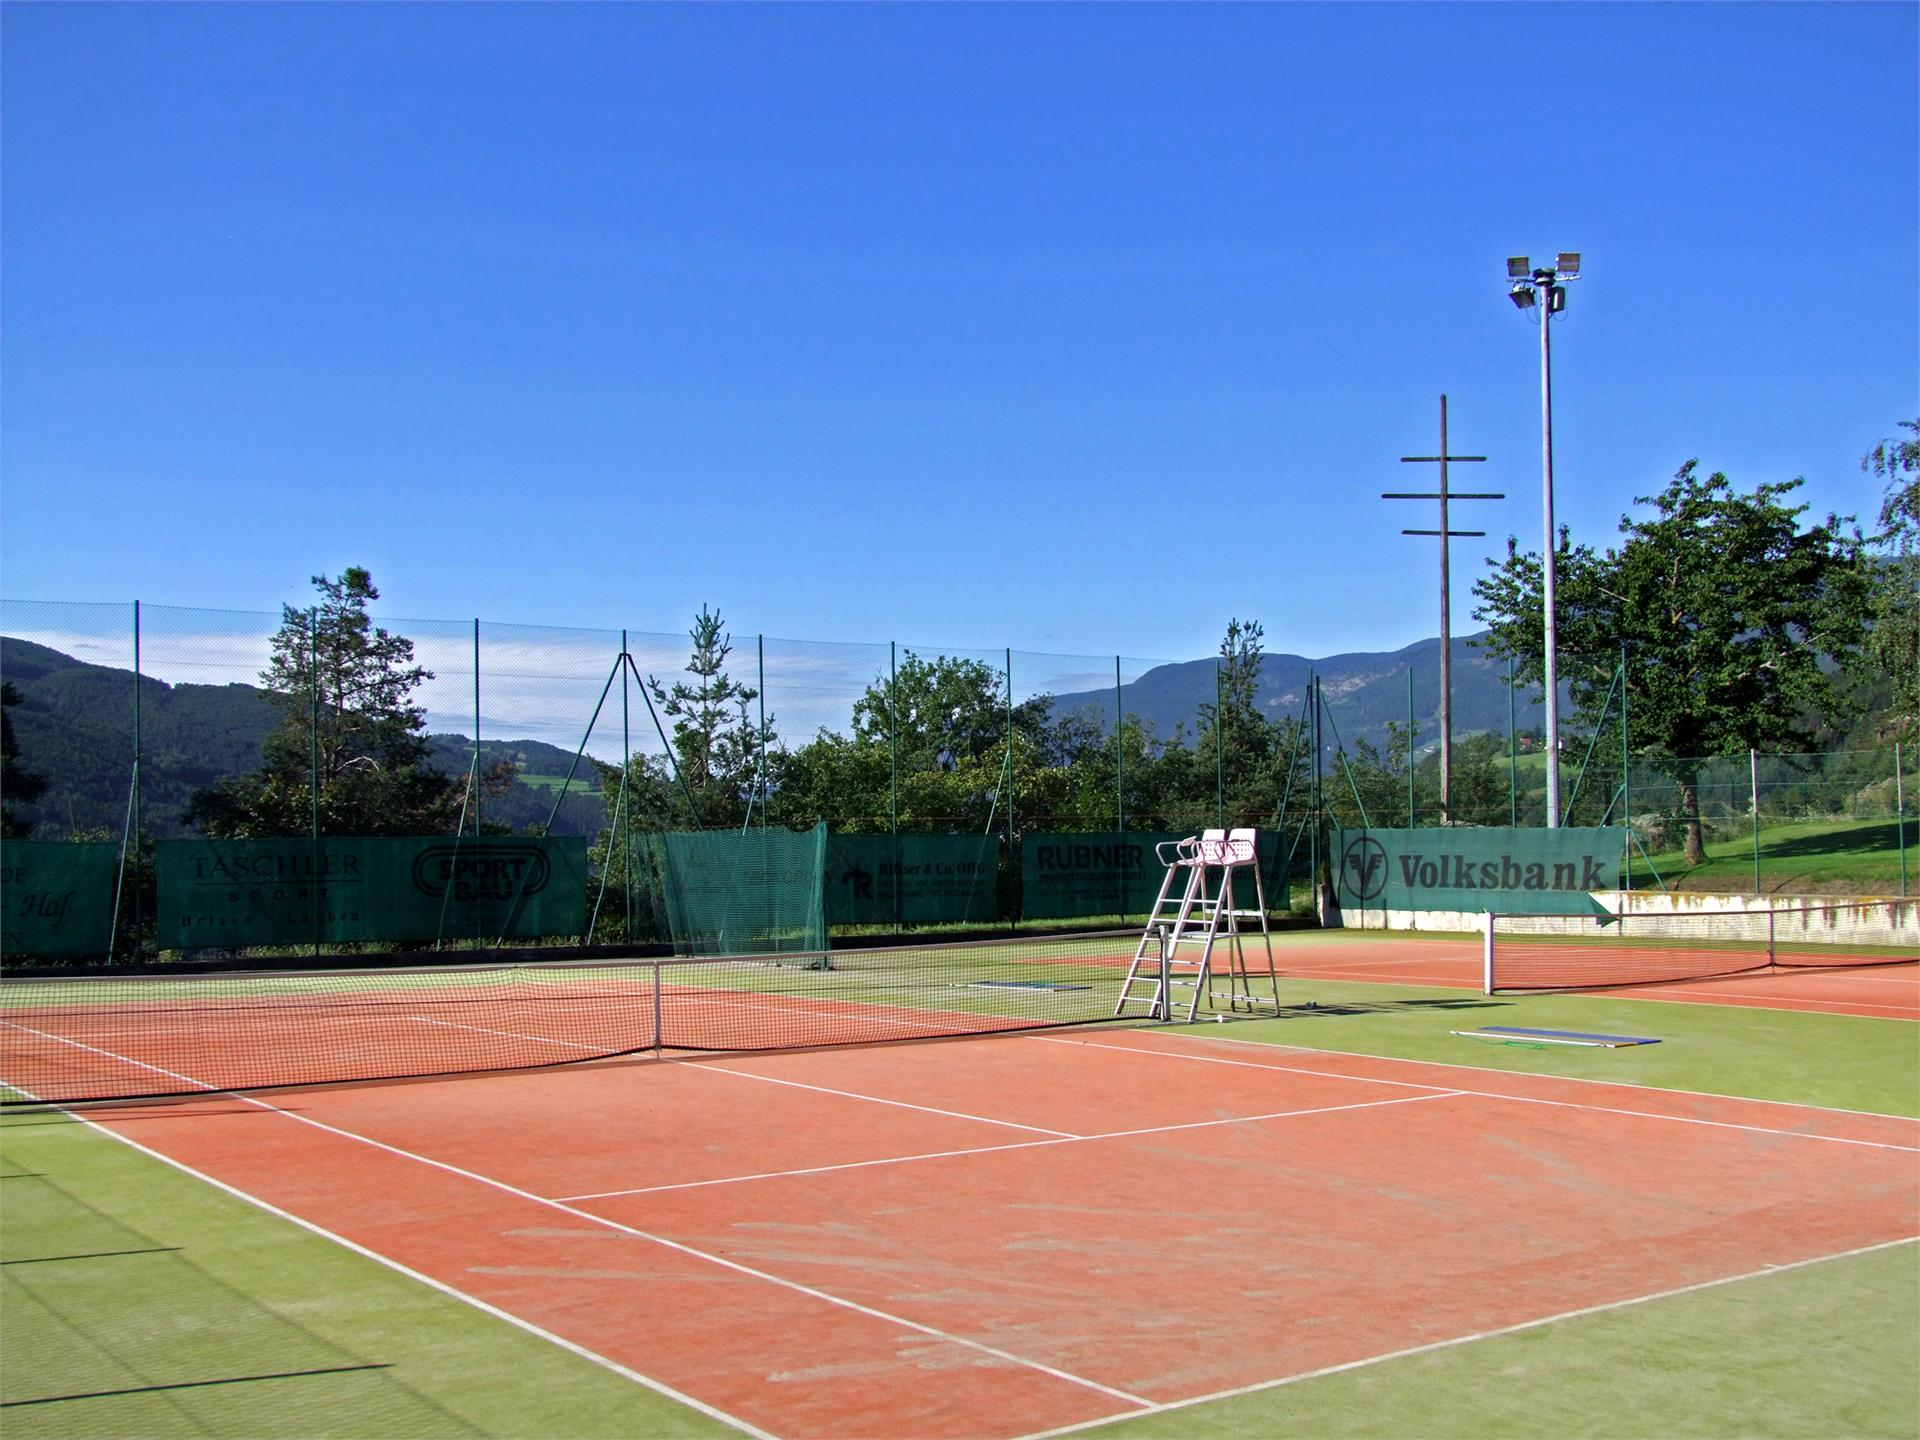 Tennis court in Velturno/Feldthurns